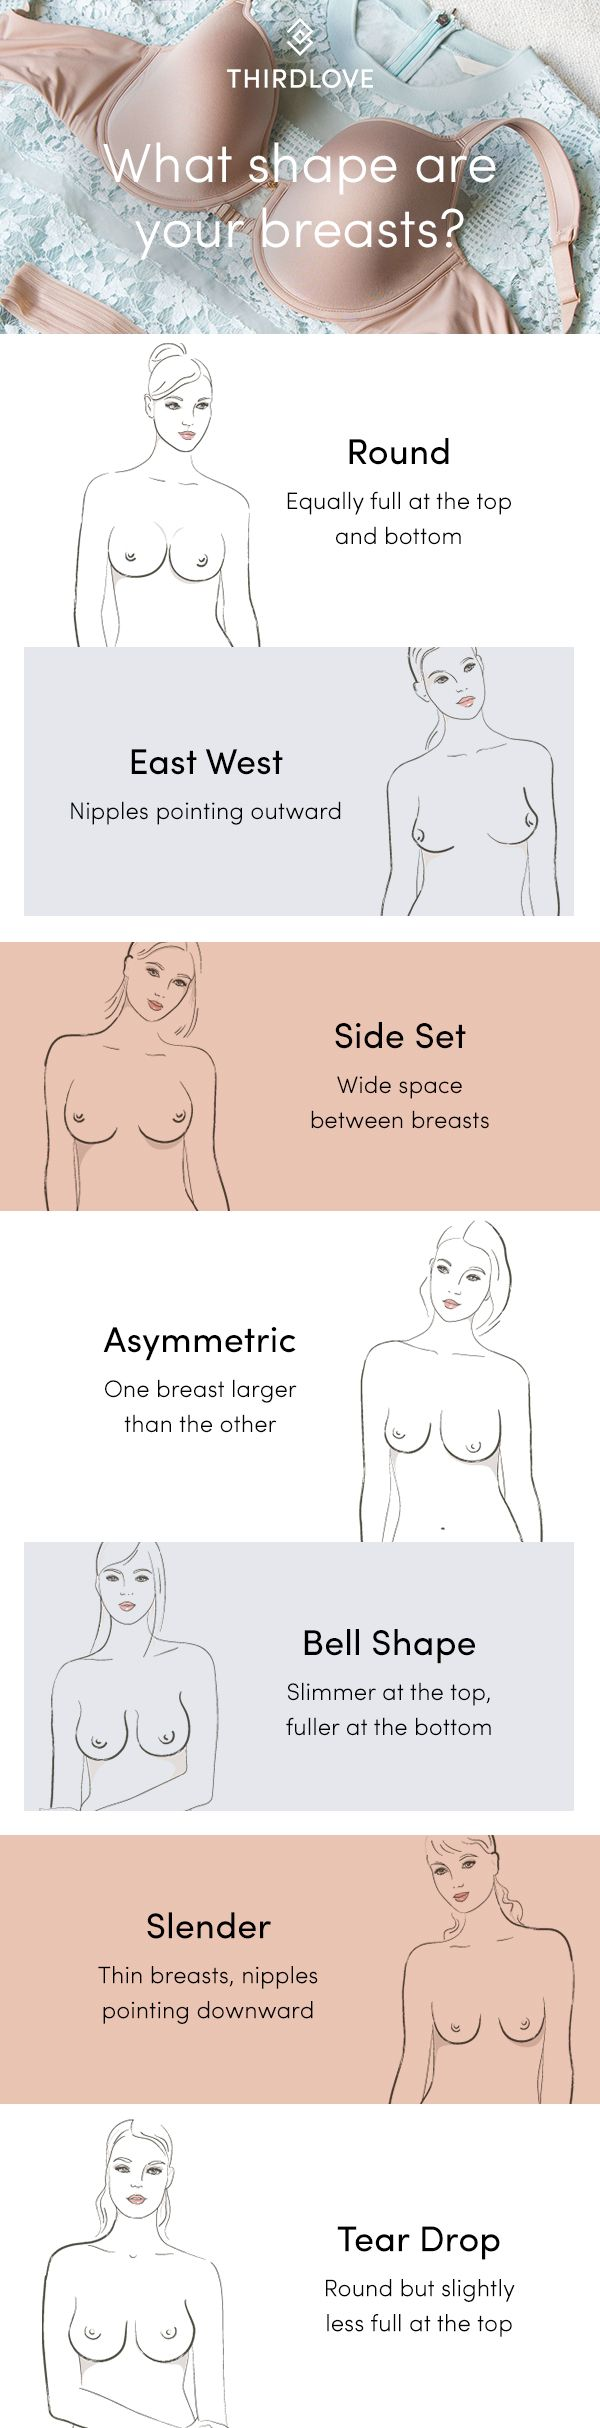 Shape matters. We developed our Breast Shape Dictionary because we think perfect fit is more than a numbered size. With your shape in mind, you're better equipped to pick styles that fit your body like a glove.